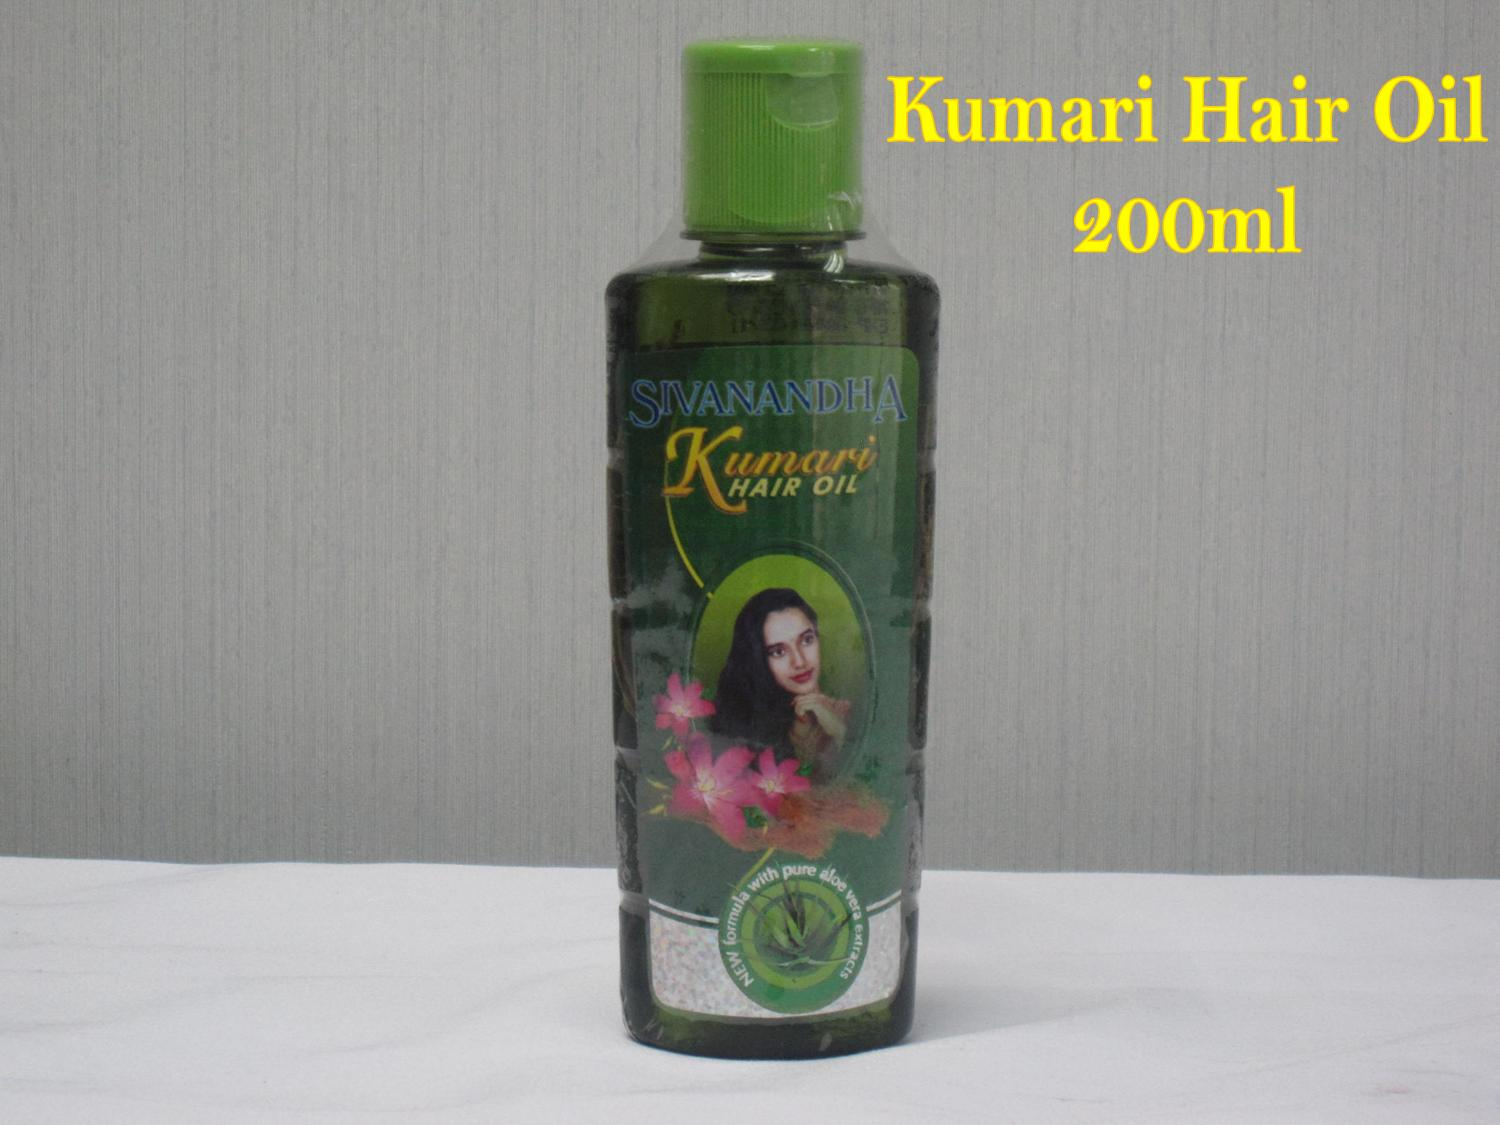 Swami Sivanandha's Herbal (M) Sdn. Bhd.: Product Pictures ...